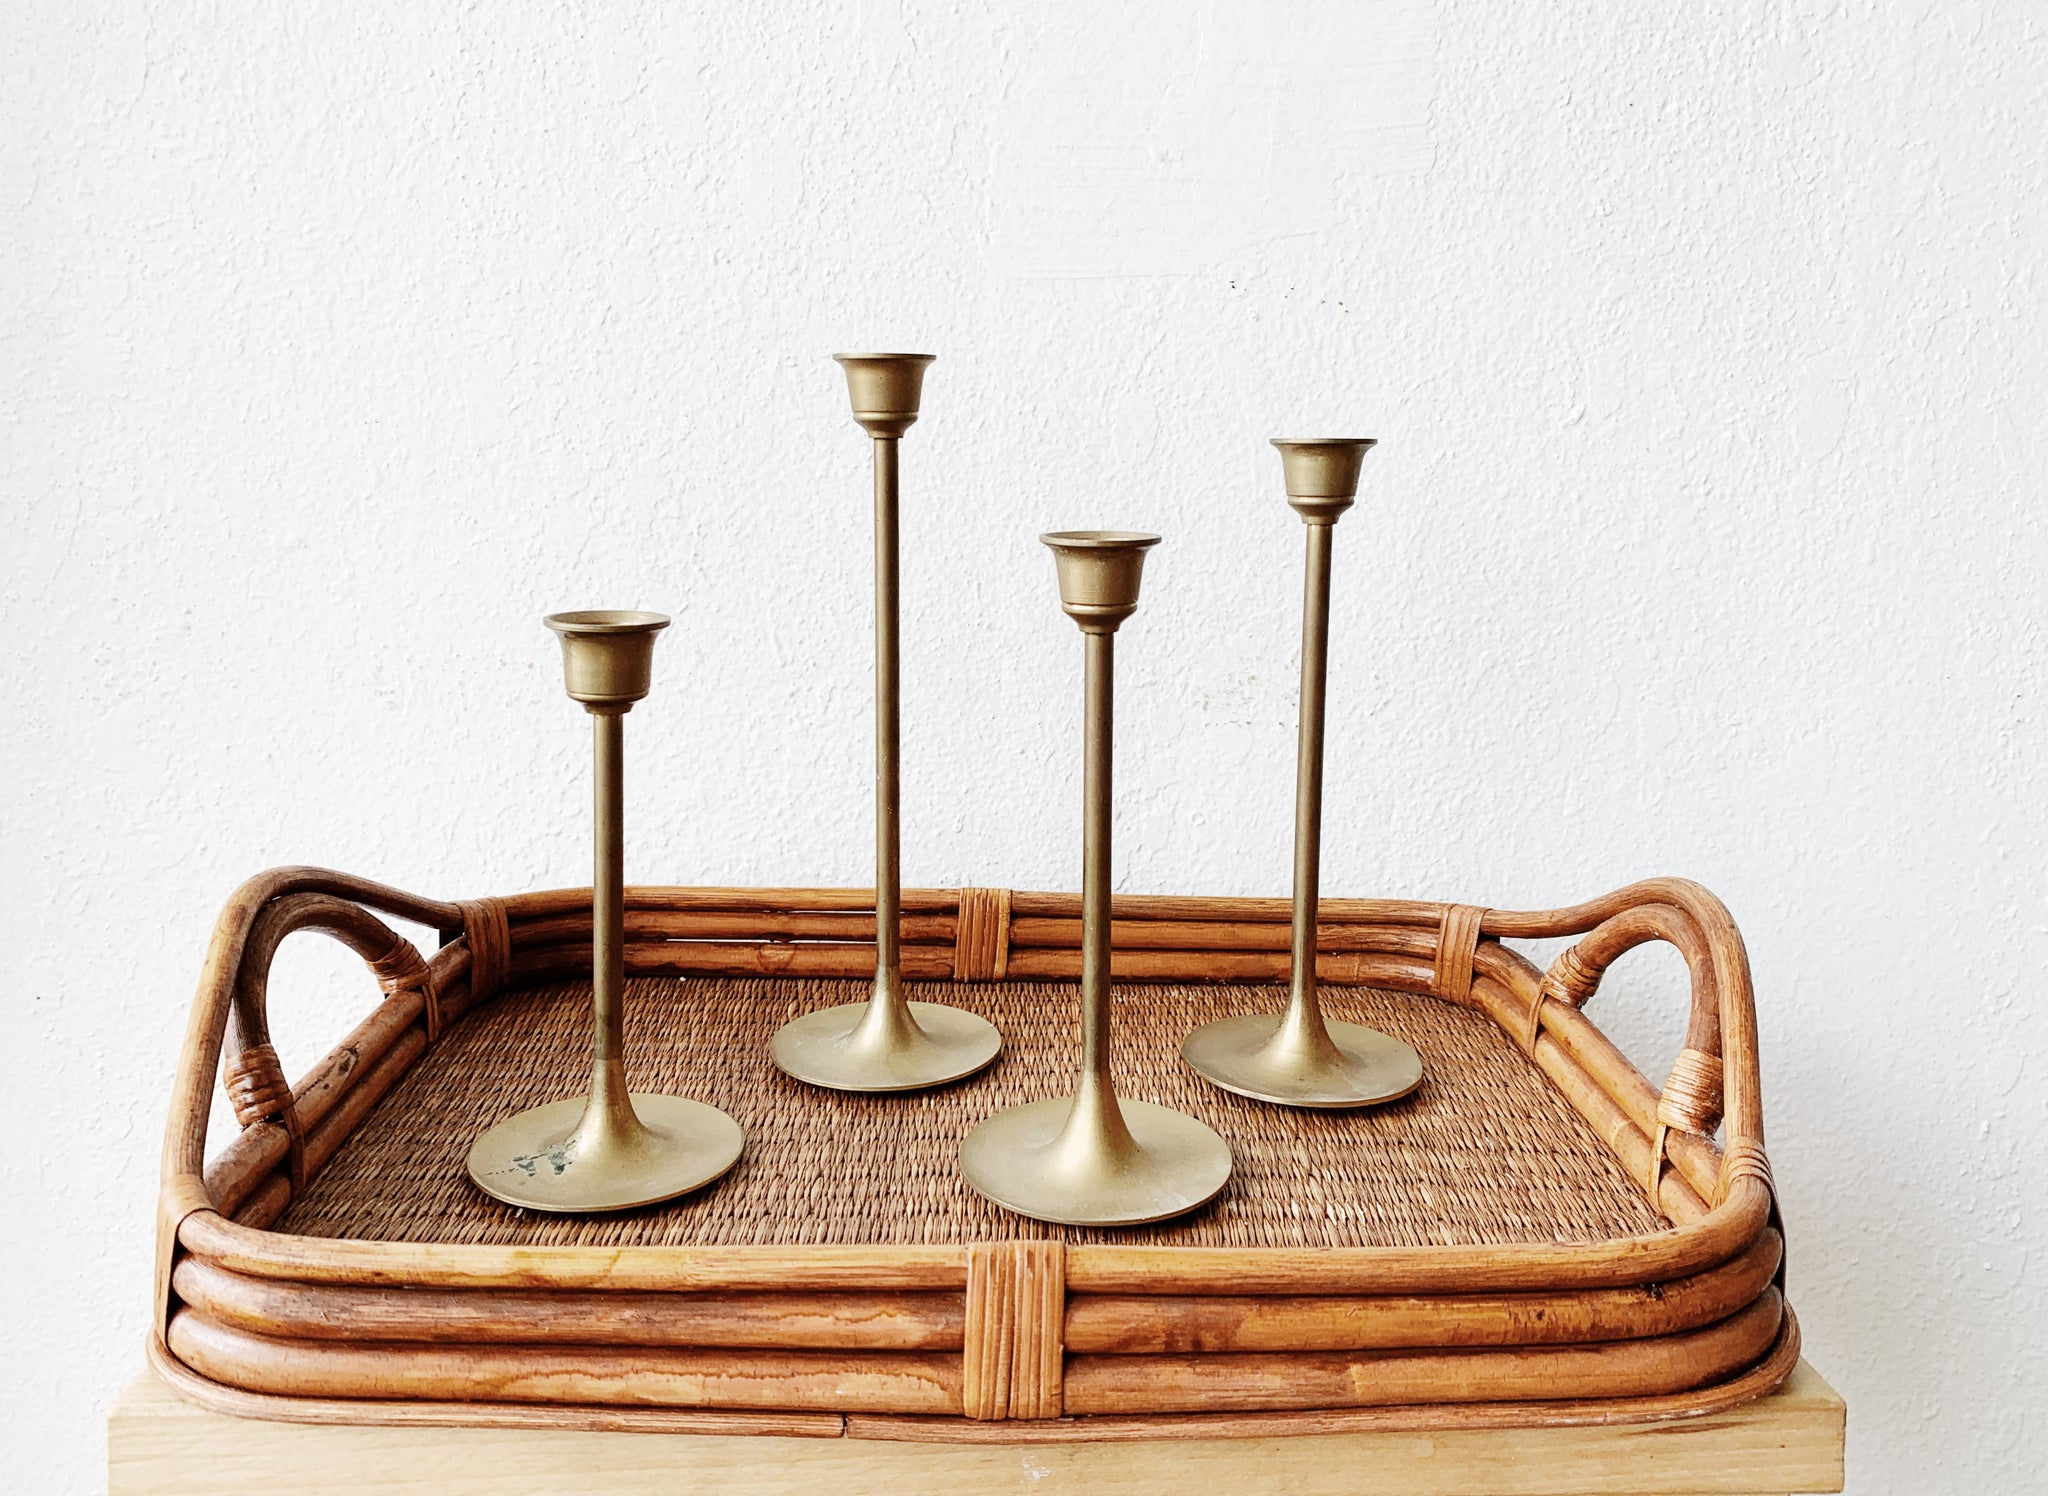 Vintage Bamboo and Wicker tray